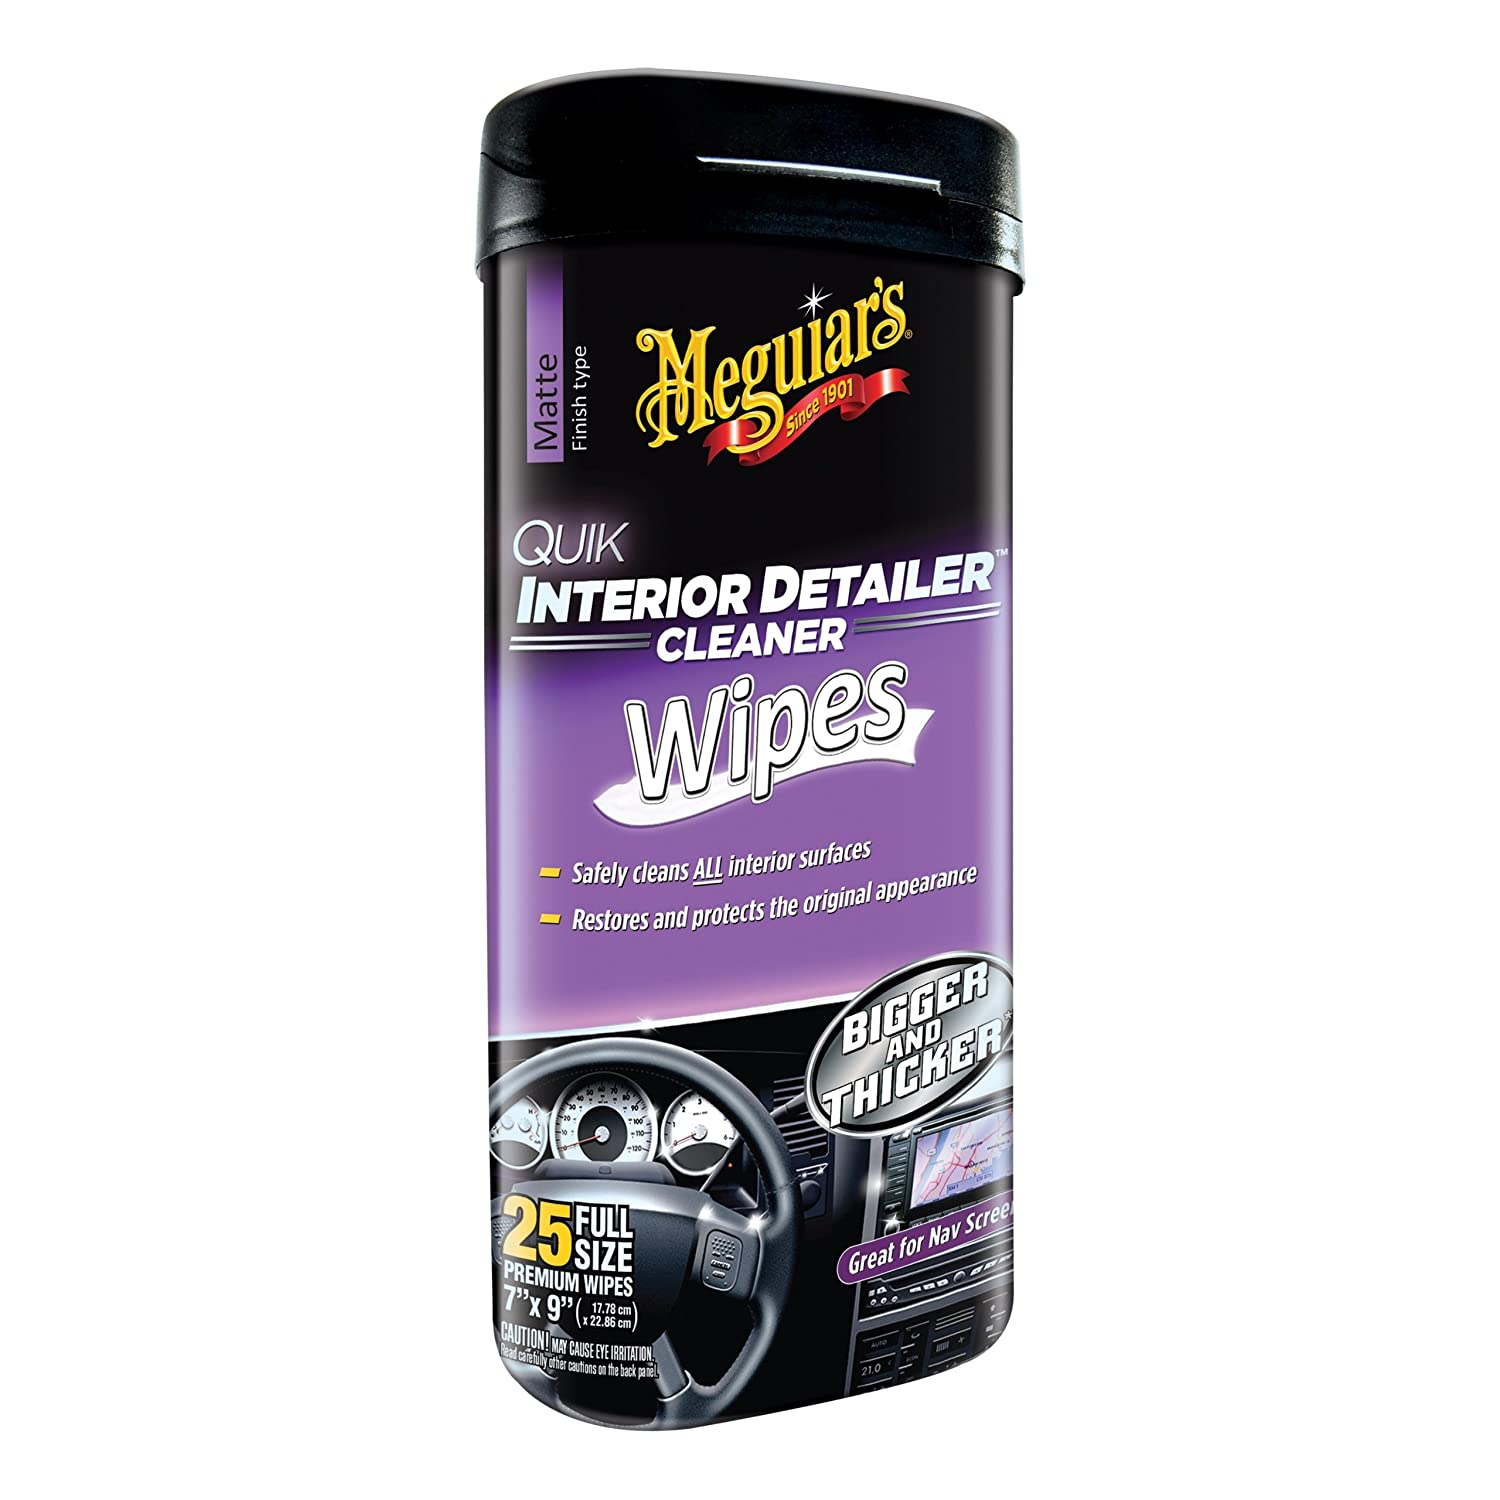 Meguiar's G13600 Quik Interior Detailer Cleaner Wipes, 25 Pack